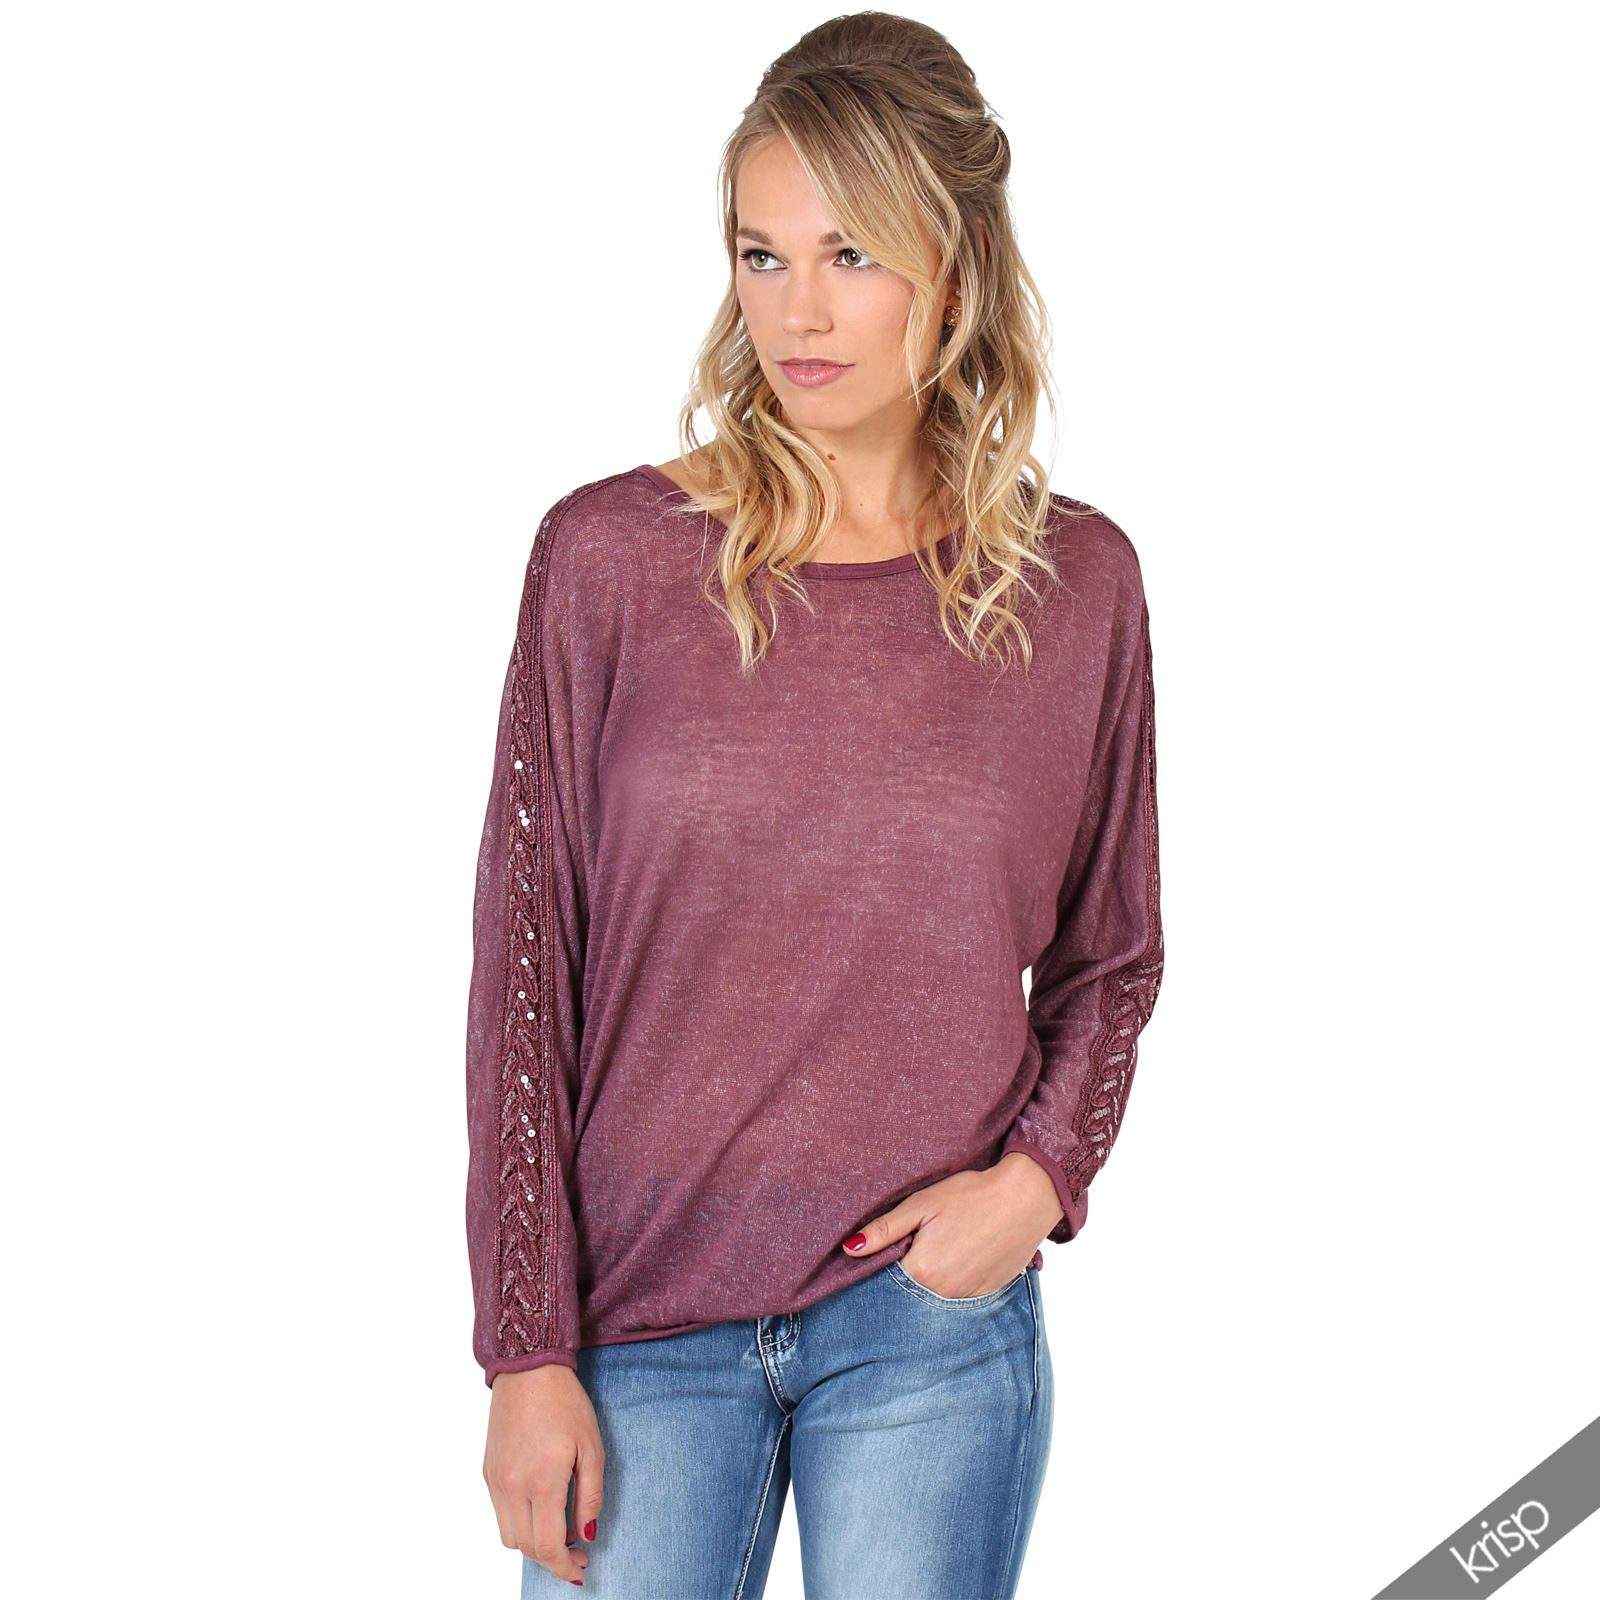 Shop our Collection of Women's Tunic Sweaters at distrib-ah3euse9.tk for the Latest Designer Brands & Styles. FREE SHIPPING AVAILABLE! Macy's Presents: The Edit- A curated mix of fashion and inspiration Check It Out. Karen Scott Long-Sleeve Tunic Sweater, Created for Macy's.